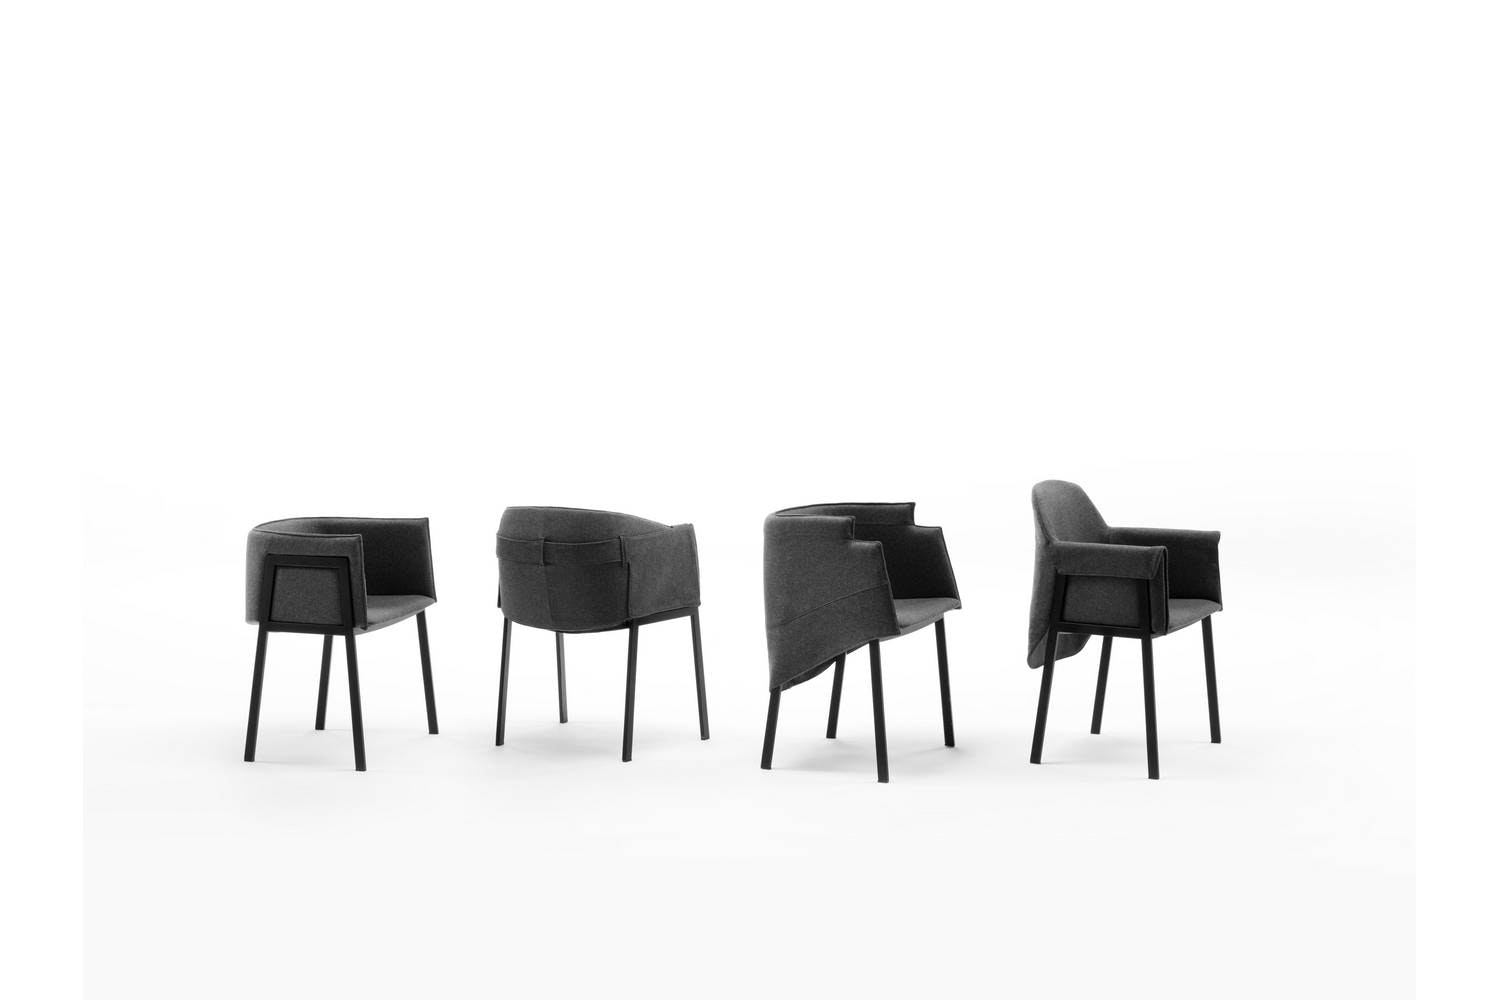 Grace Chair by Giopato & Coombes for Living Divani